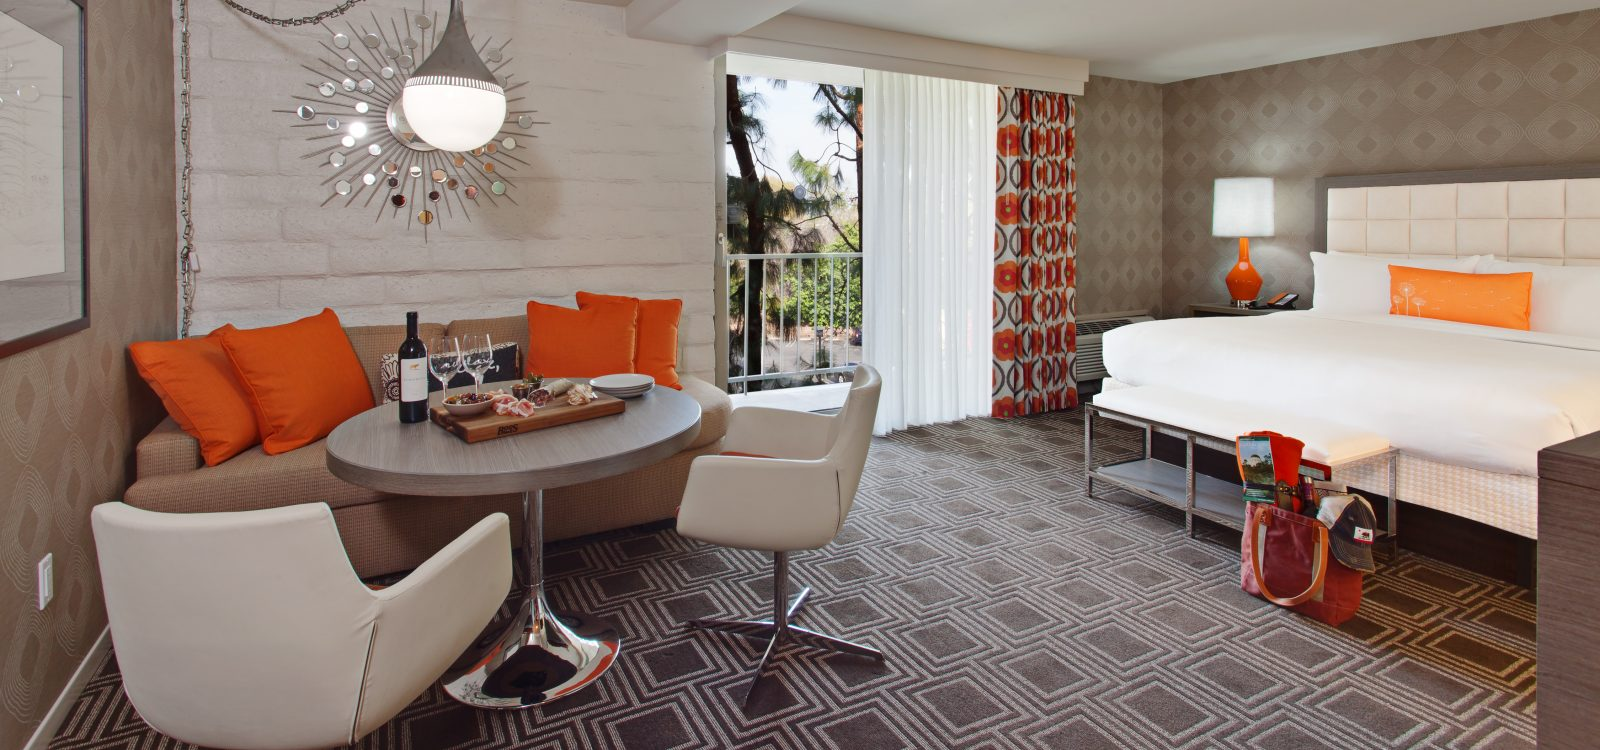 Hollywood boutique hotel accommodations